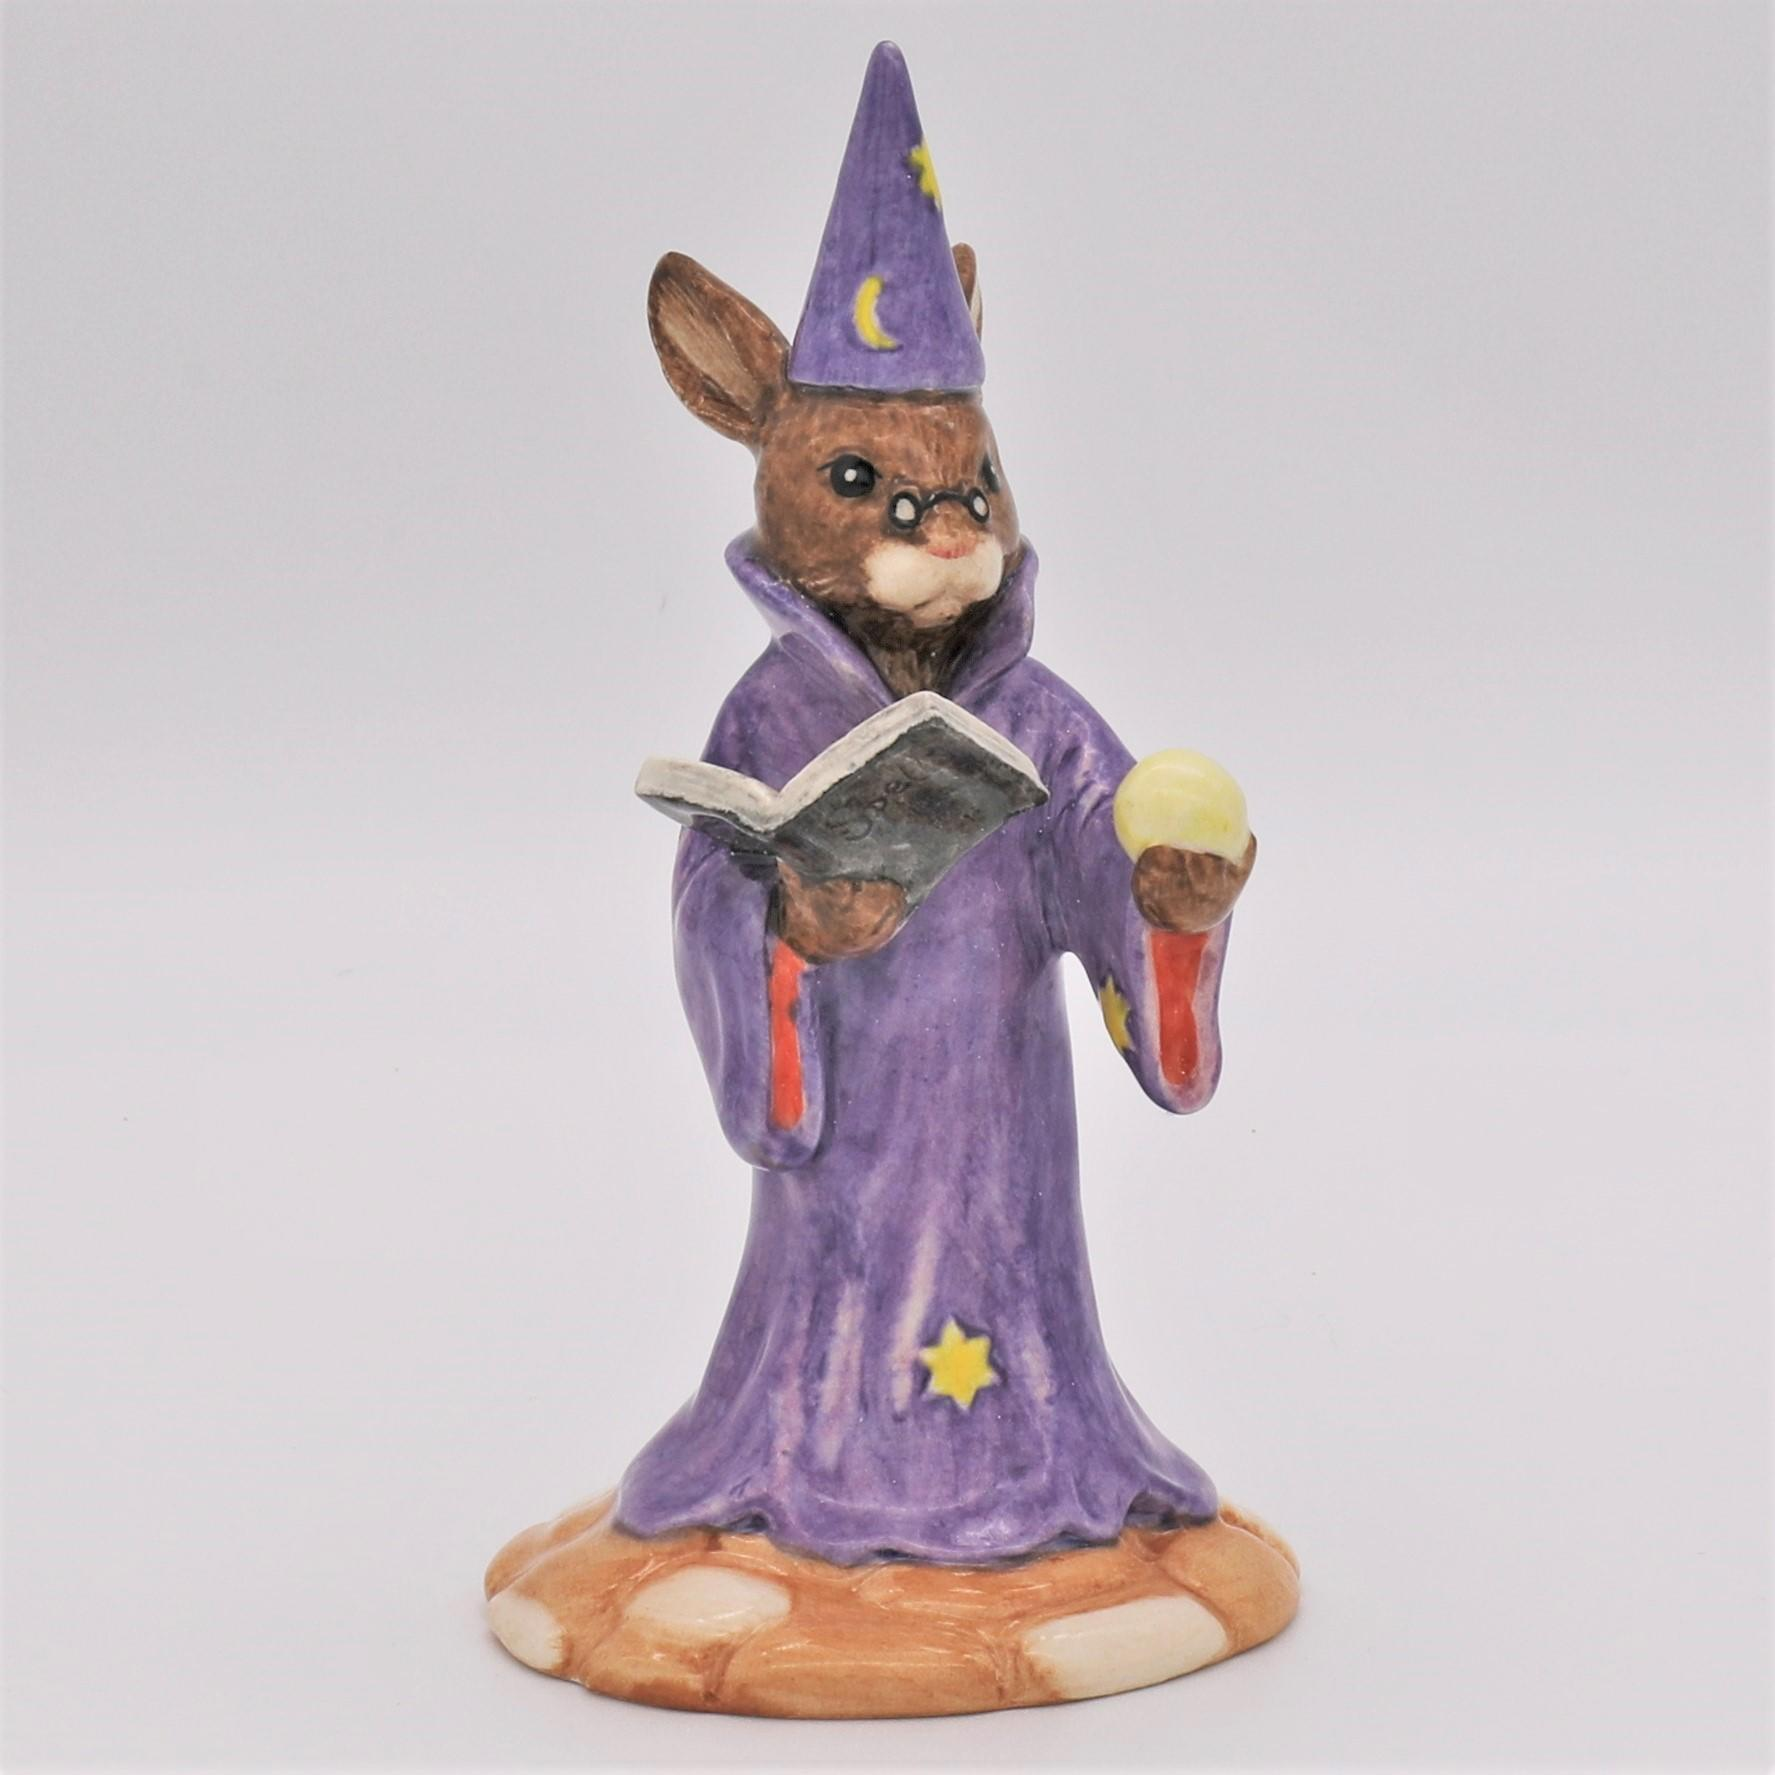 Royal Doulton Bunnykins figure - DB168 Wizard